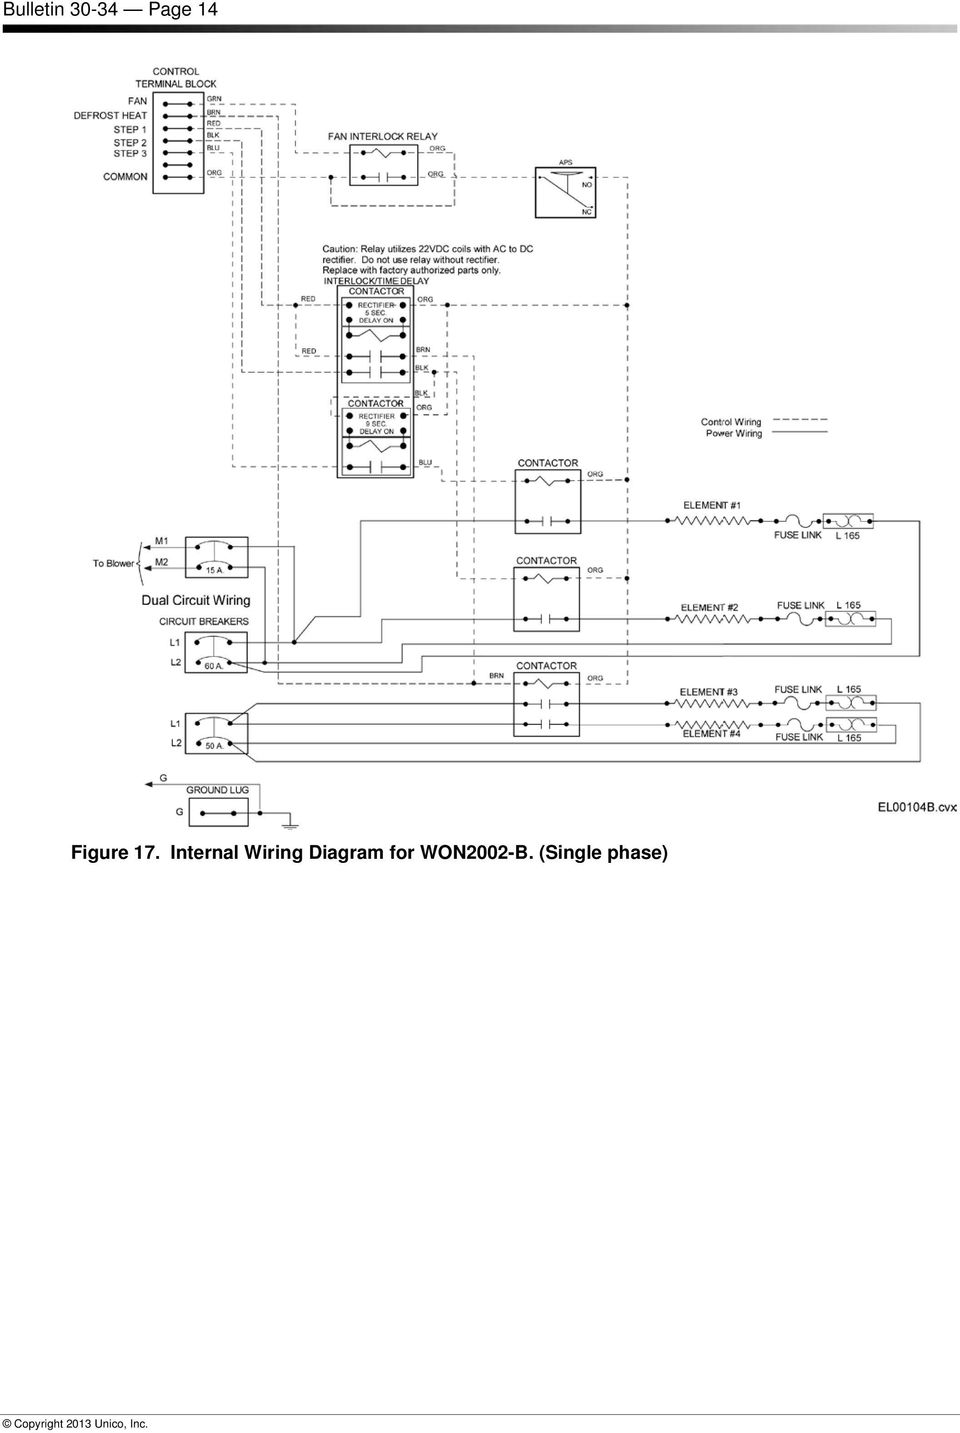 Unico System Wiring Diagram | Wiring Liry on battery diagrams, lighting diagrams, honda motorcycle repair diagrams, transformer diagrams, sincgars radio configurations diagrams, electrical diagrams, switch diagrams, engine diagrams, series and parallel circuits diagrams, electronic circuit diagrams, friendship bracelet diagrams, pinout diagrams, smart car diagrams, motor diagrams, internet of things diagrams, hvac diagrams, troubleshooting diagrams, led circuit diagrams, gmc fuse box diagrams,